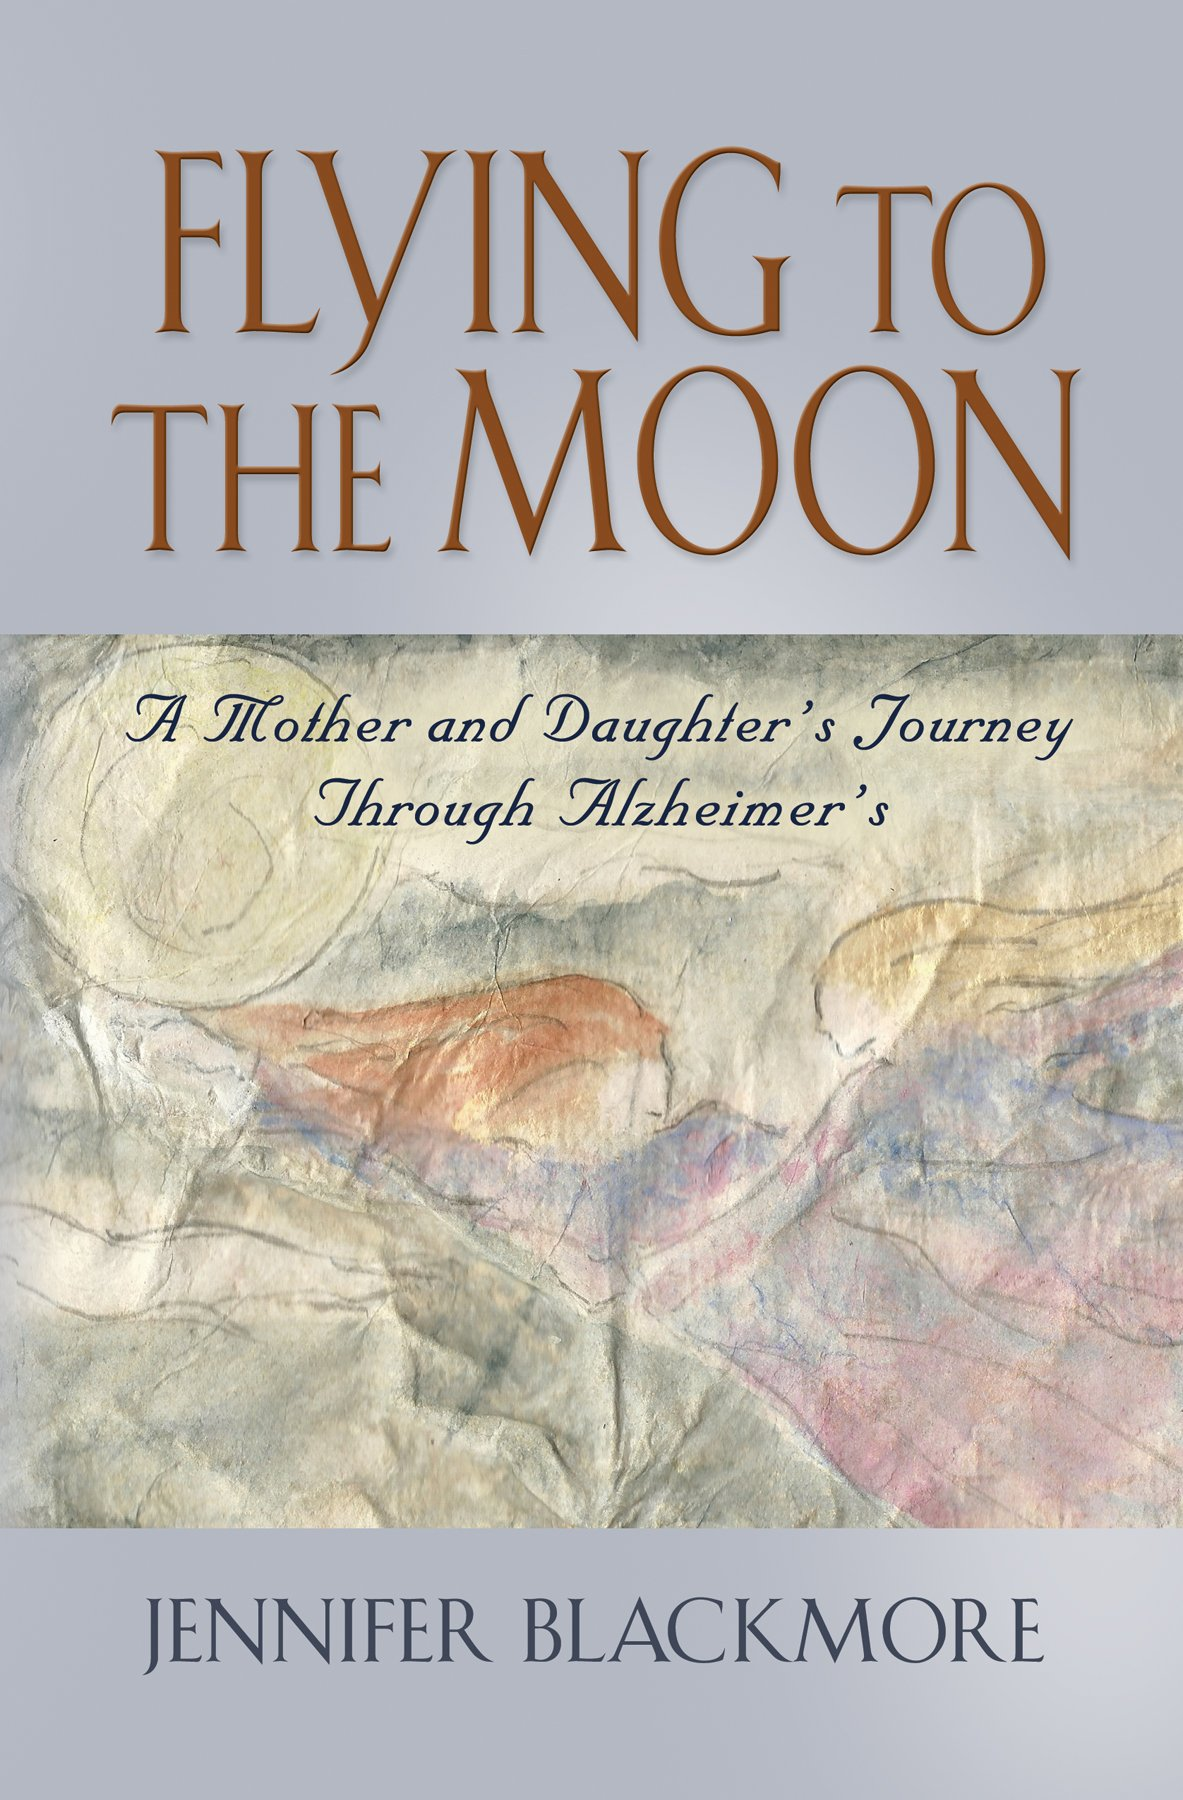 Read Online FLYING TO THE MOON: A Mother and Daughter's Journey Through Alzheimer's PDF